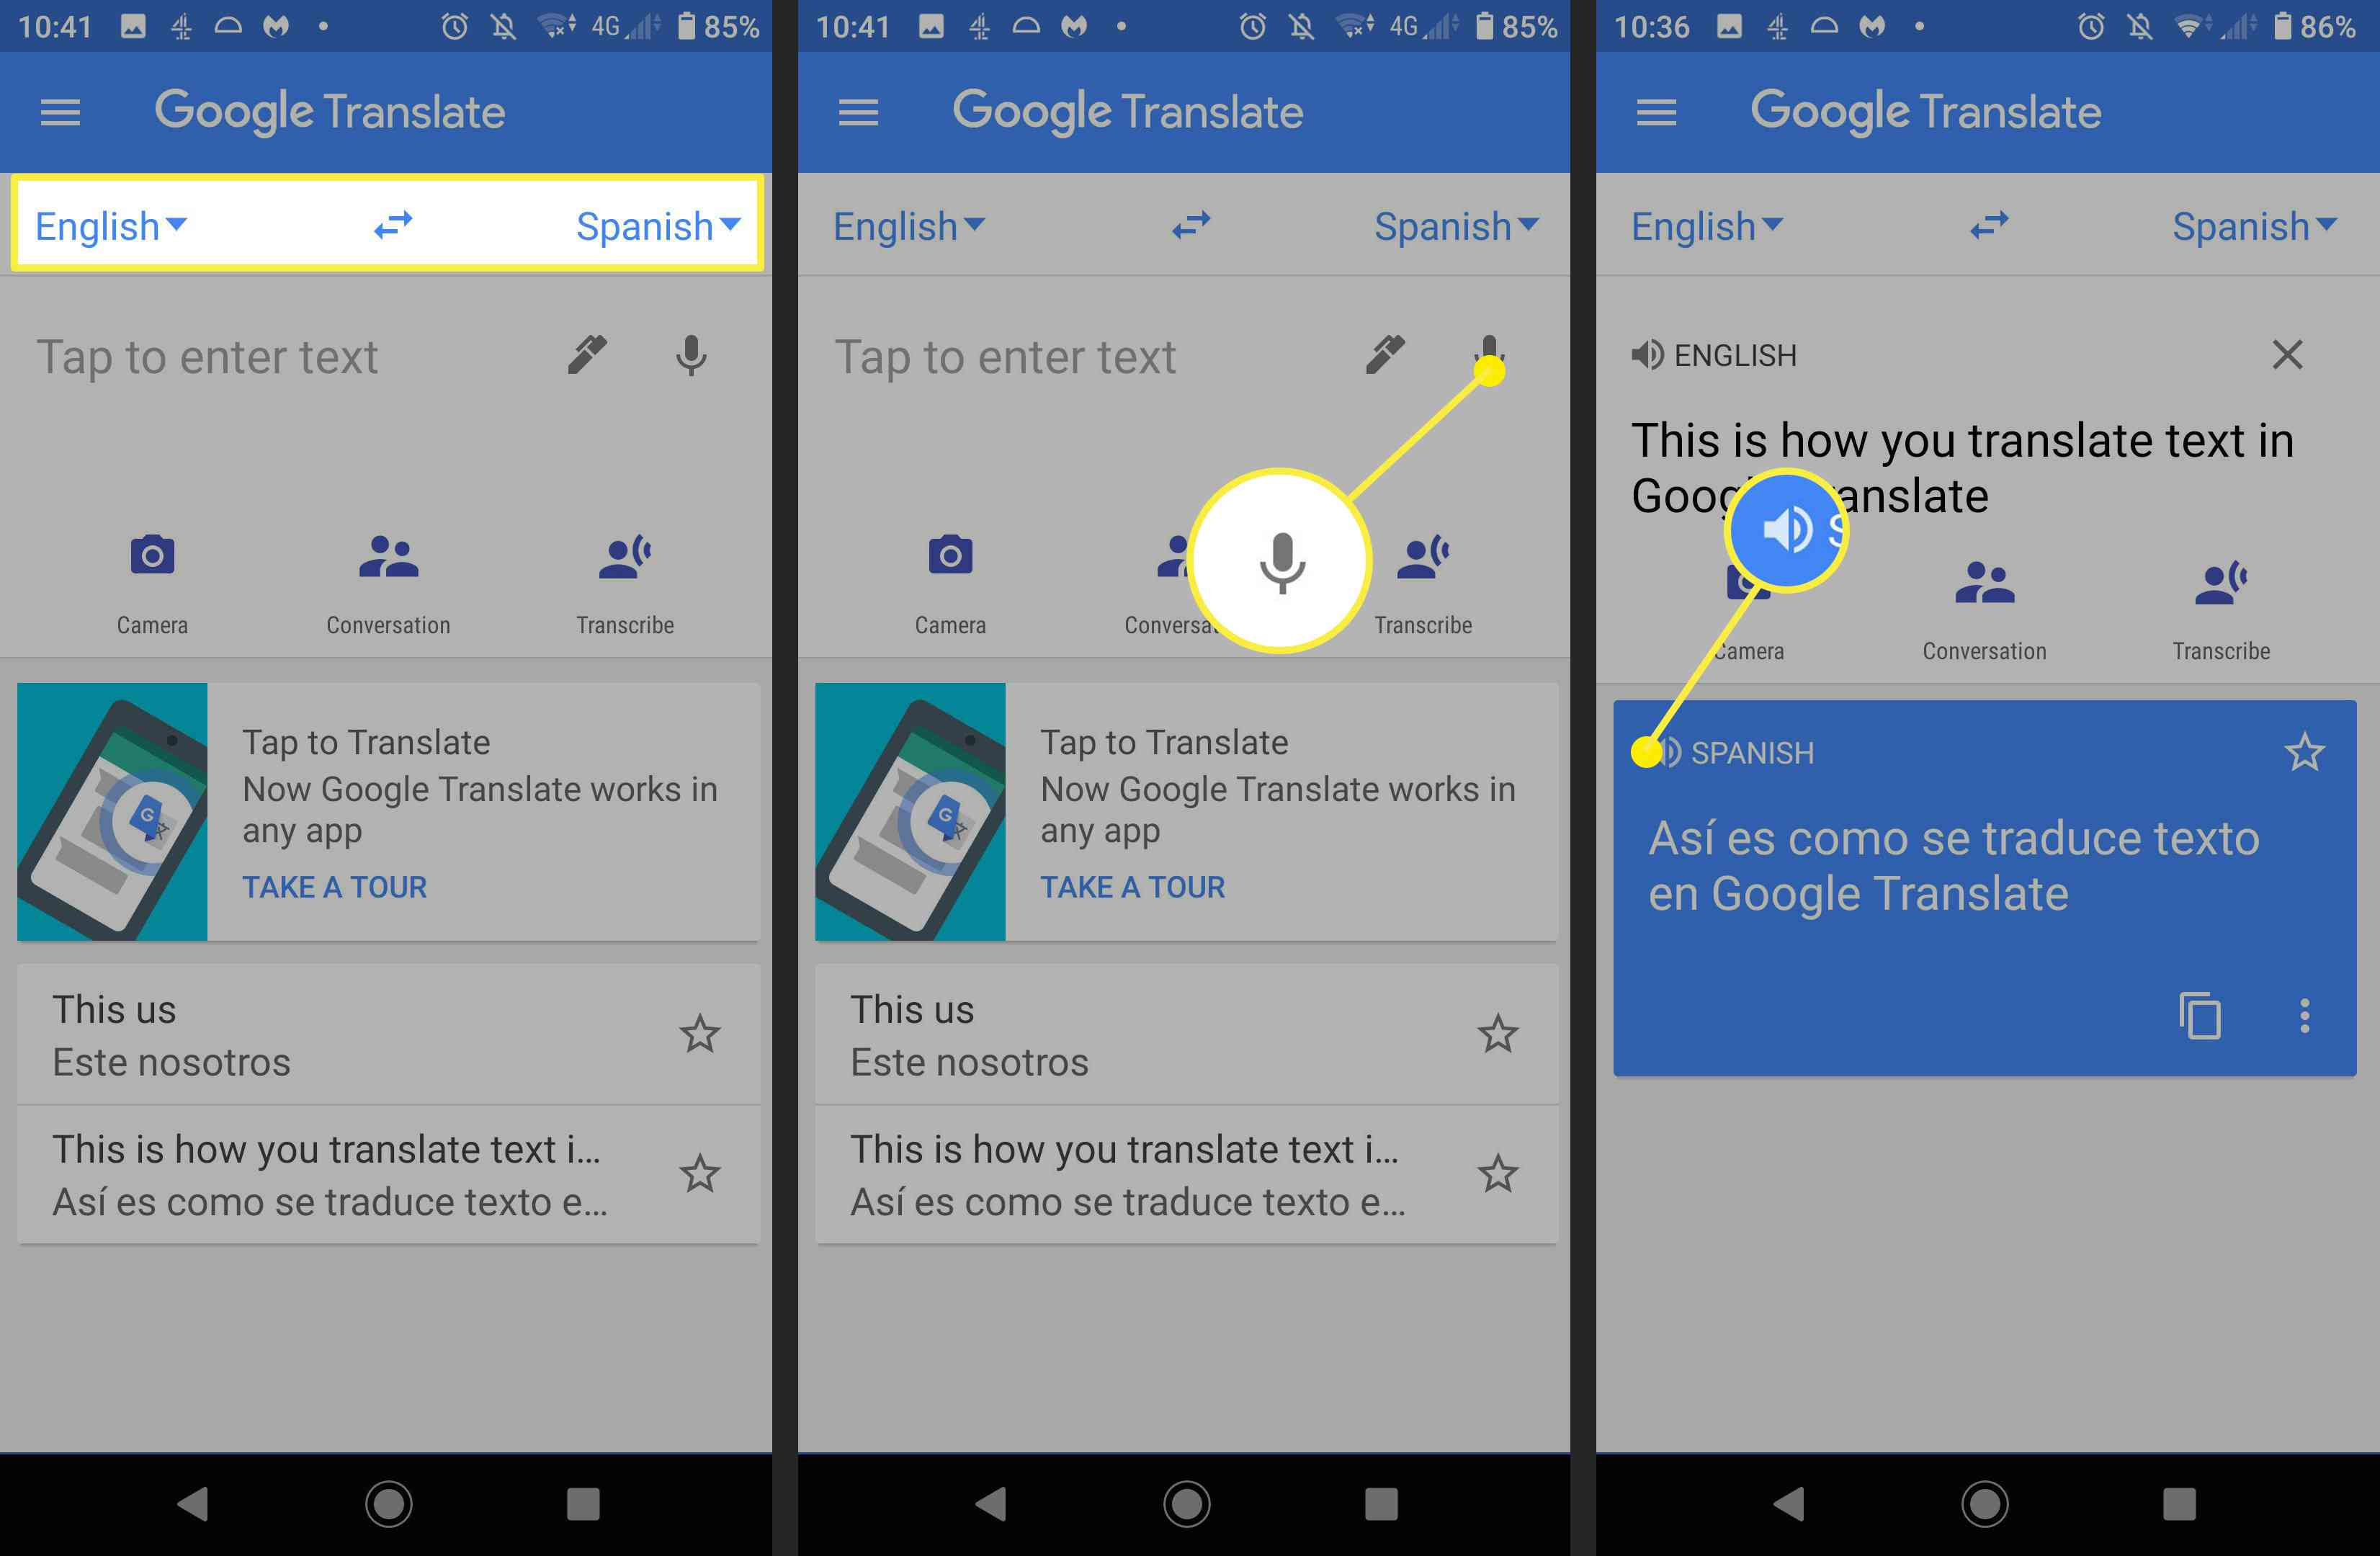 Screenshots showing how to dictate and listen to translations in Google Translate.